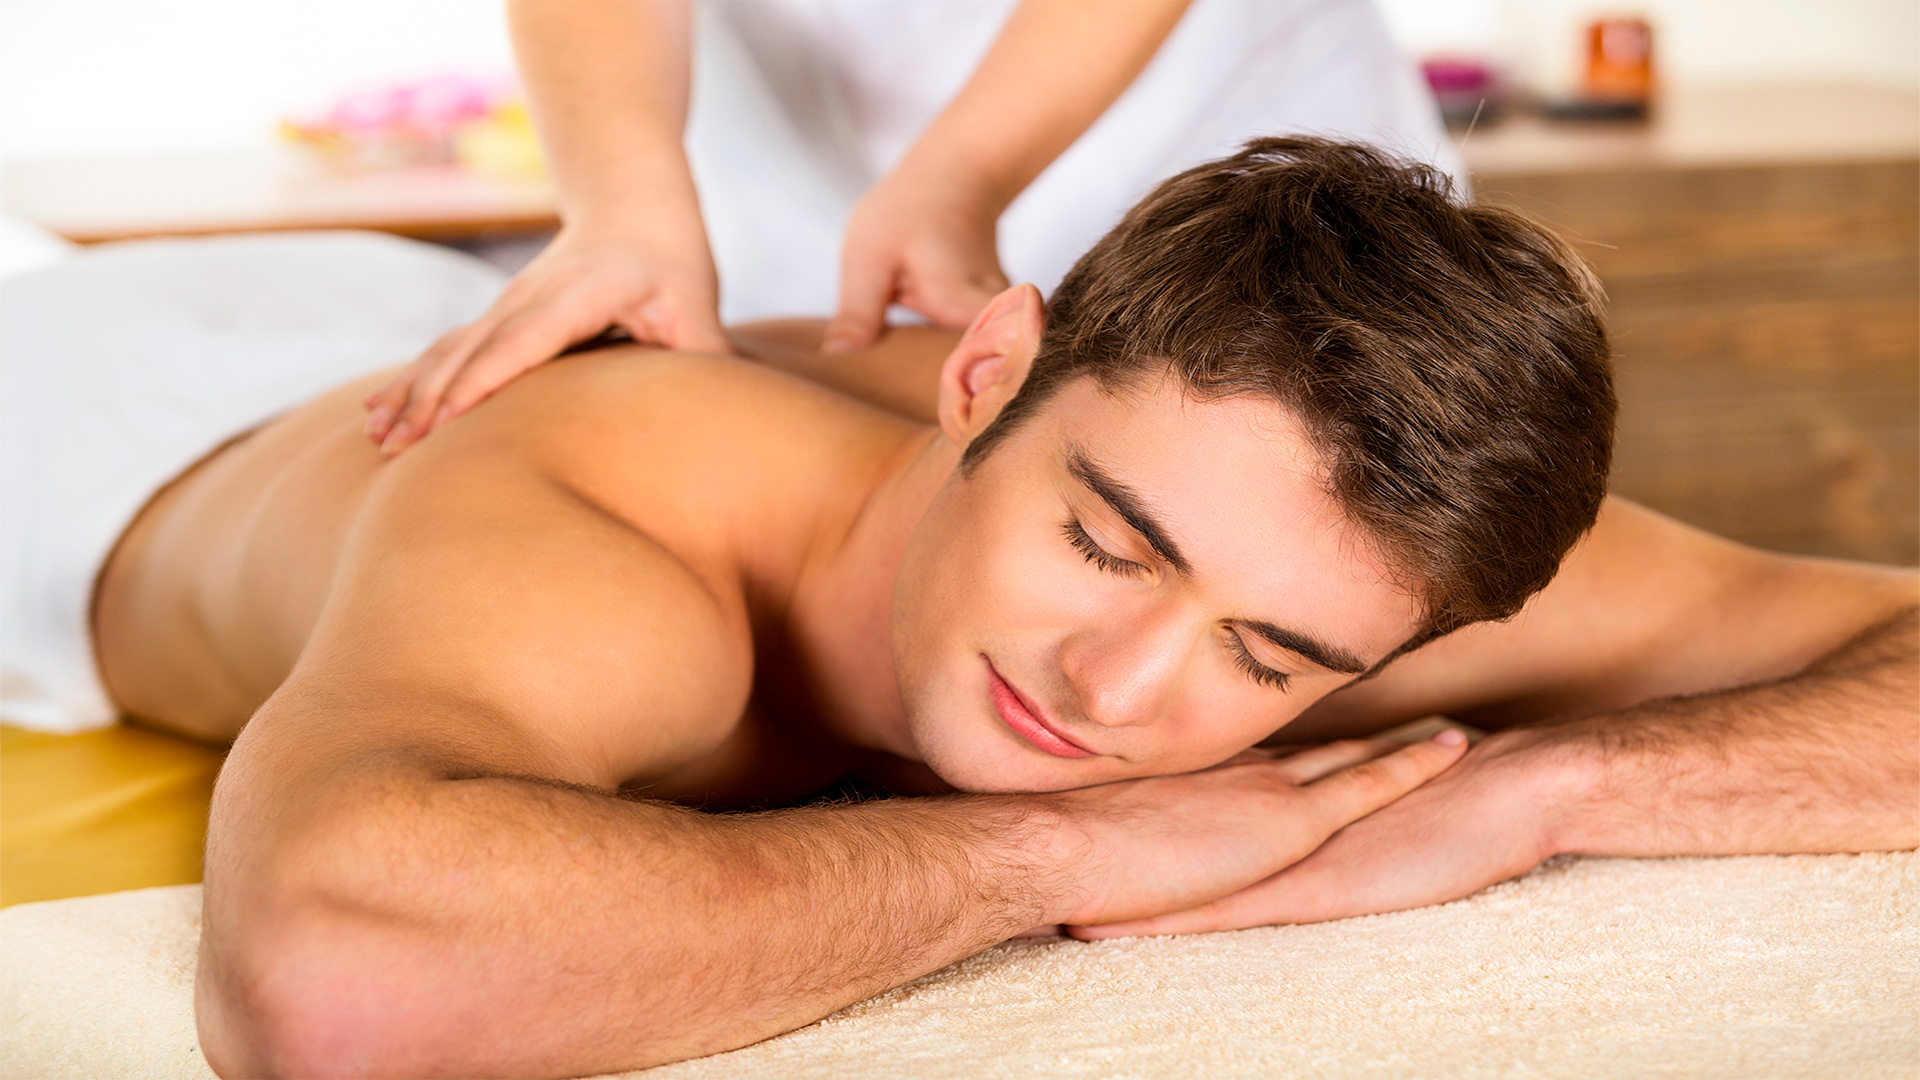 The Top Spa Treatments For Men